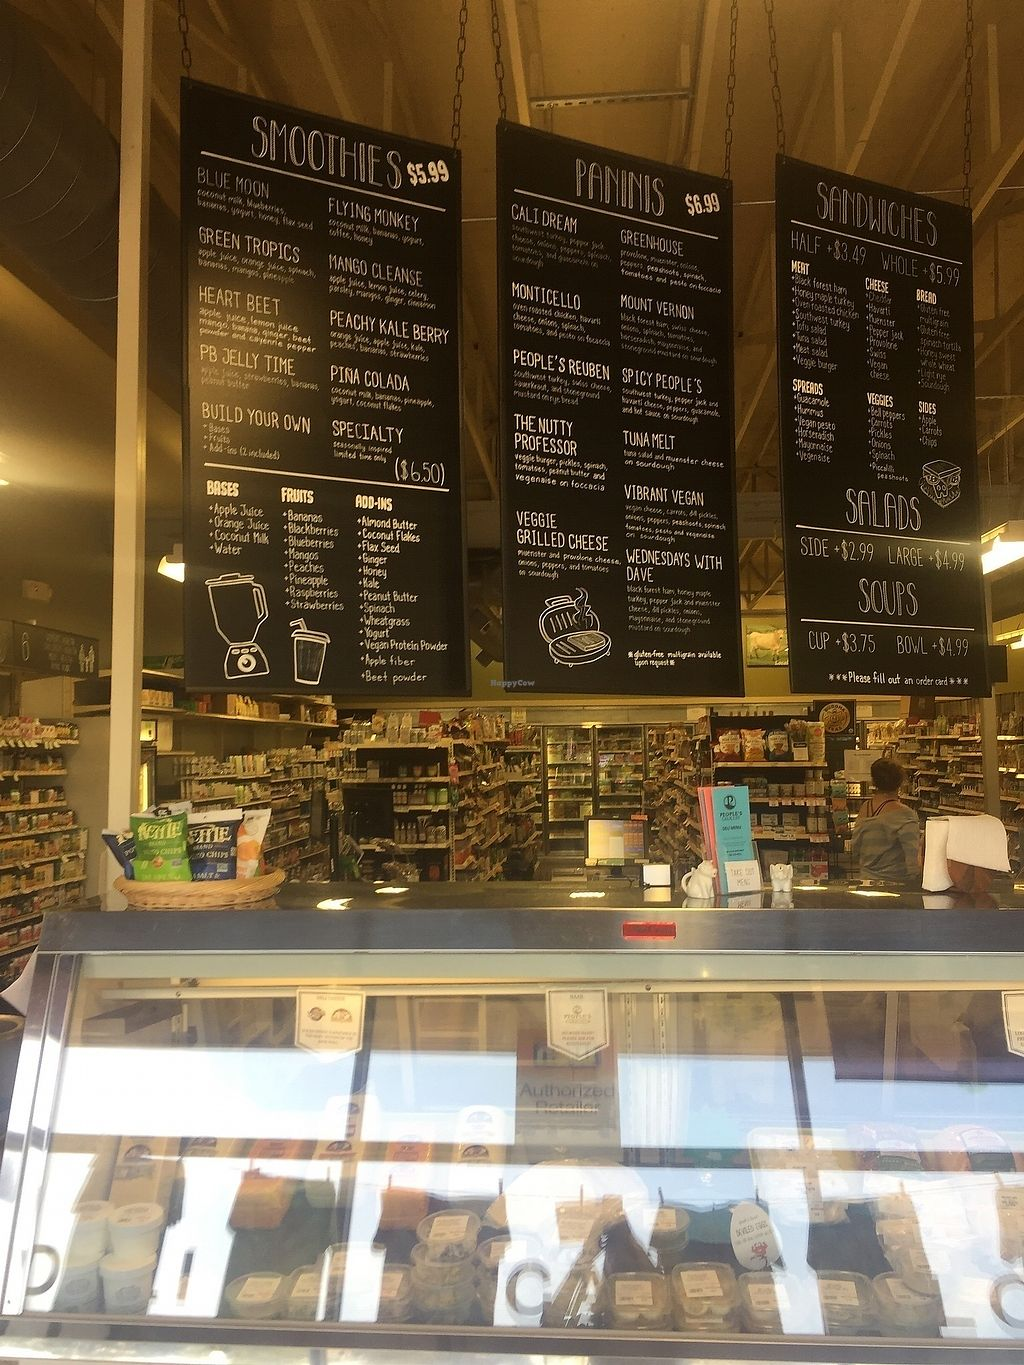 """Photo of People's Grocery and Deli  by <a href=""""/members/profile/MaddyR"""">MaddyR</a> <br/>interior and menu <br/> August 23, 2017  - <a href='/contact/abuse/image/2000/296271'>Report</a>"""